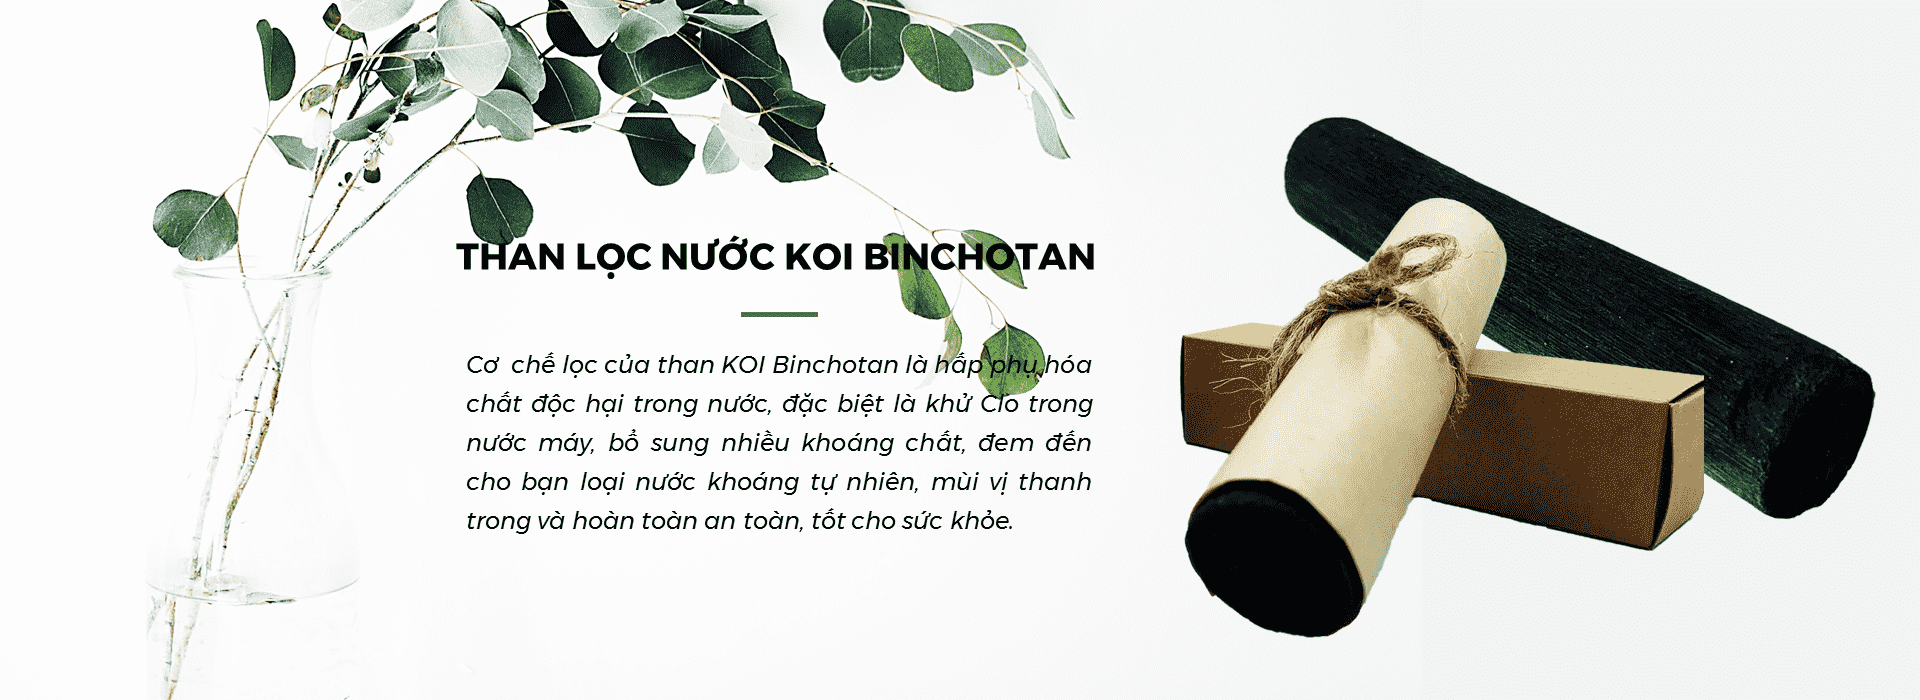 than loc nuoc